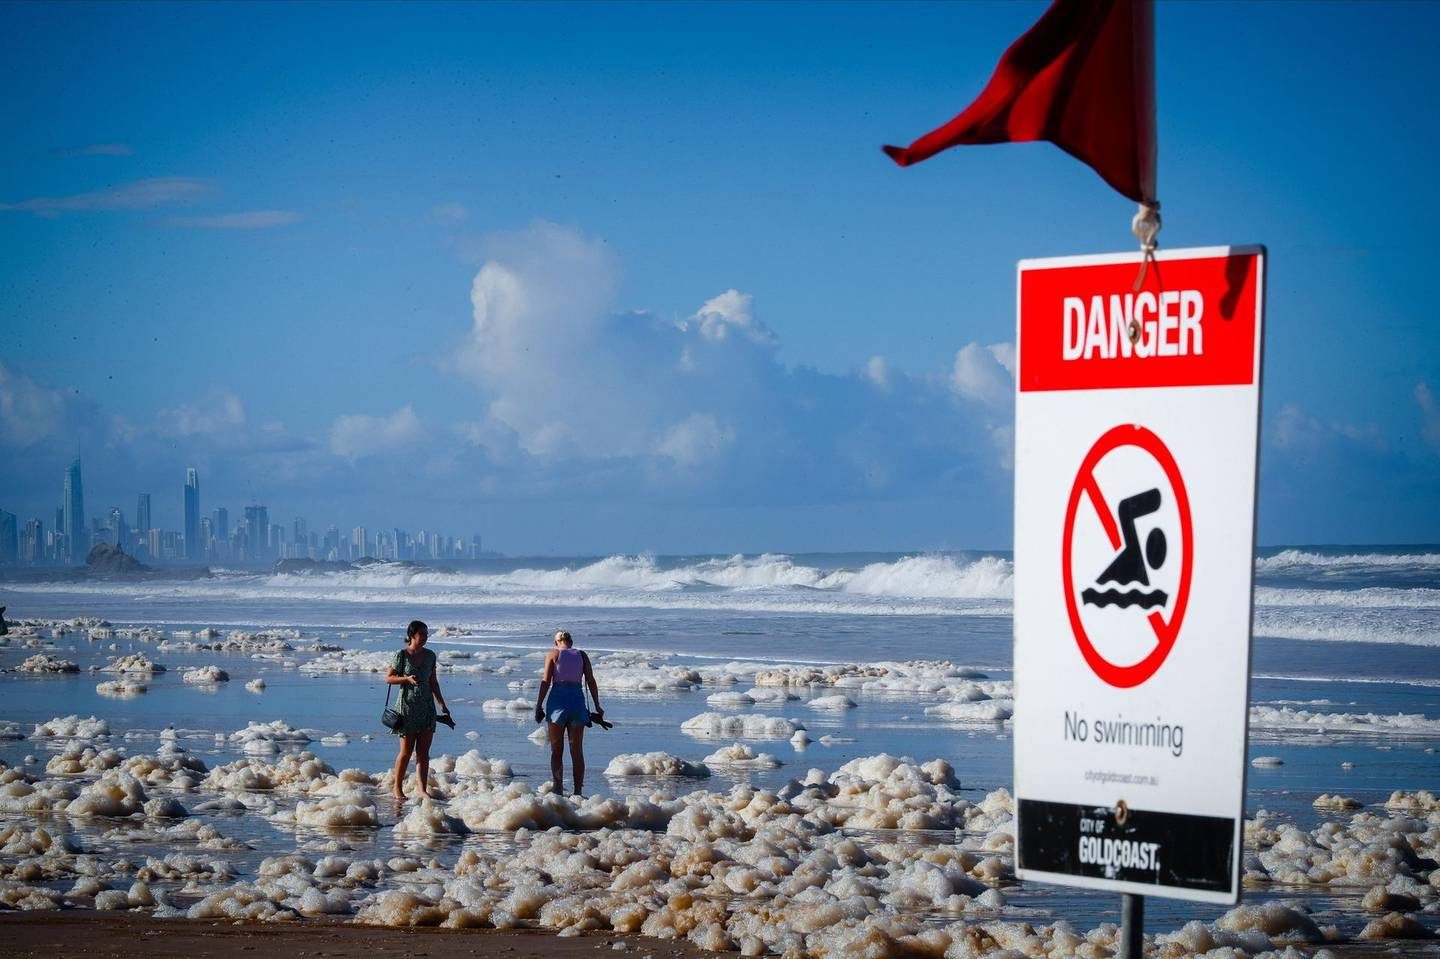 Tourists walk amongst beach foam in the wake of cyclonic conditions at Currumbin Beach on December 15, 2020, after wild weather lashed Australia's Northern New South Wales and South East Queensland with heavy rain, strong winds and king tides. / AFP / AFP  / Patrick HAMILTON